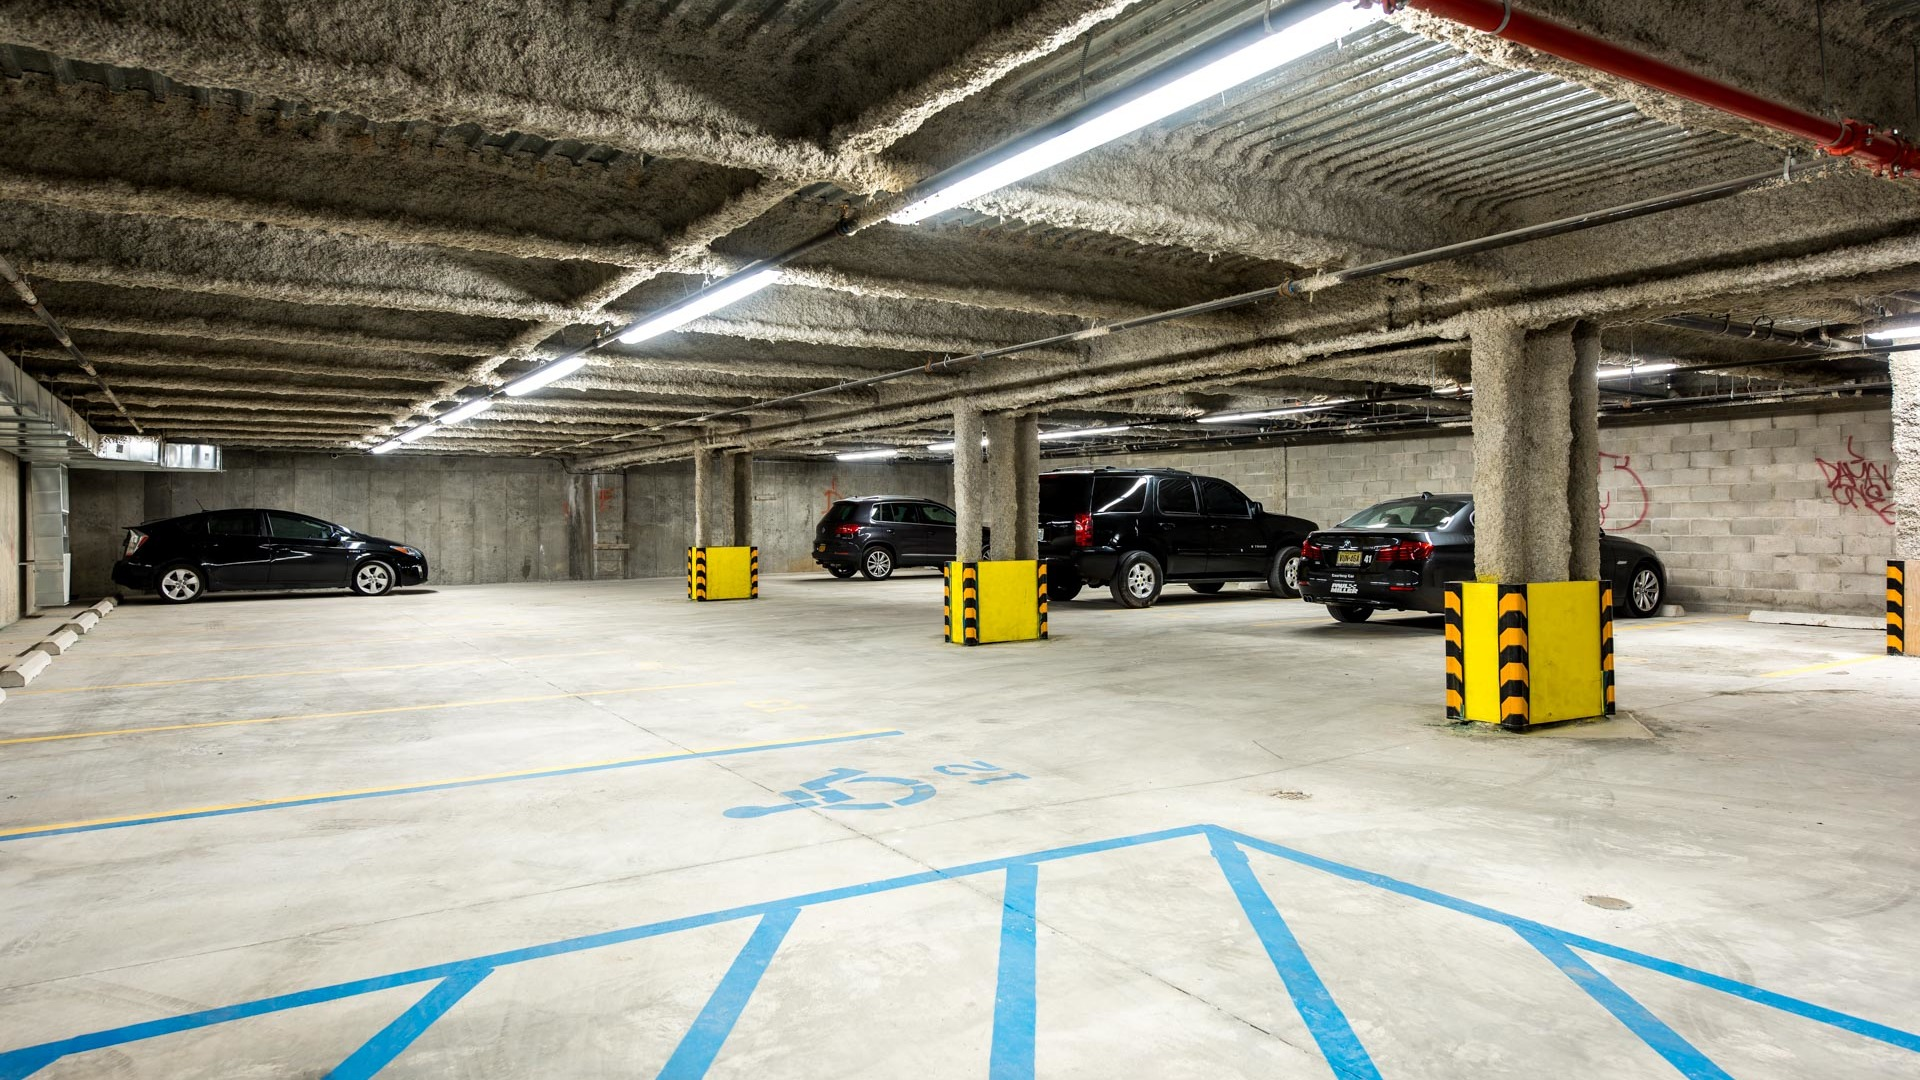 031 785 dekalb avenue garage 1